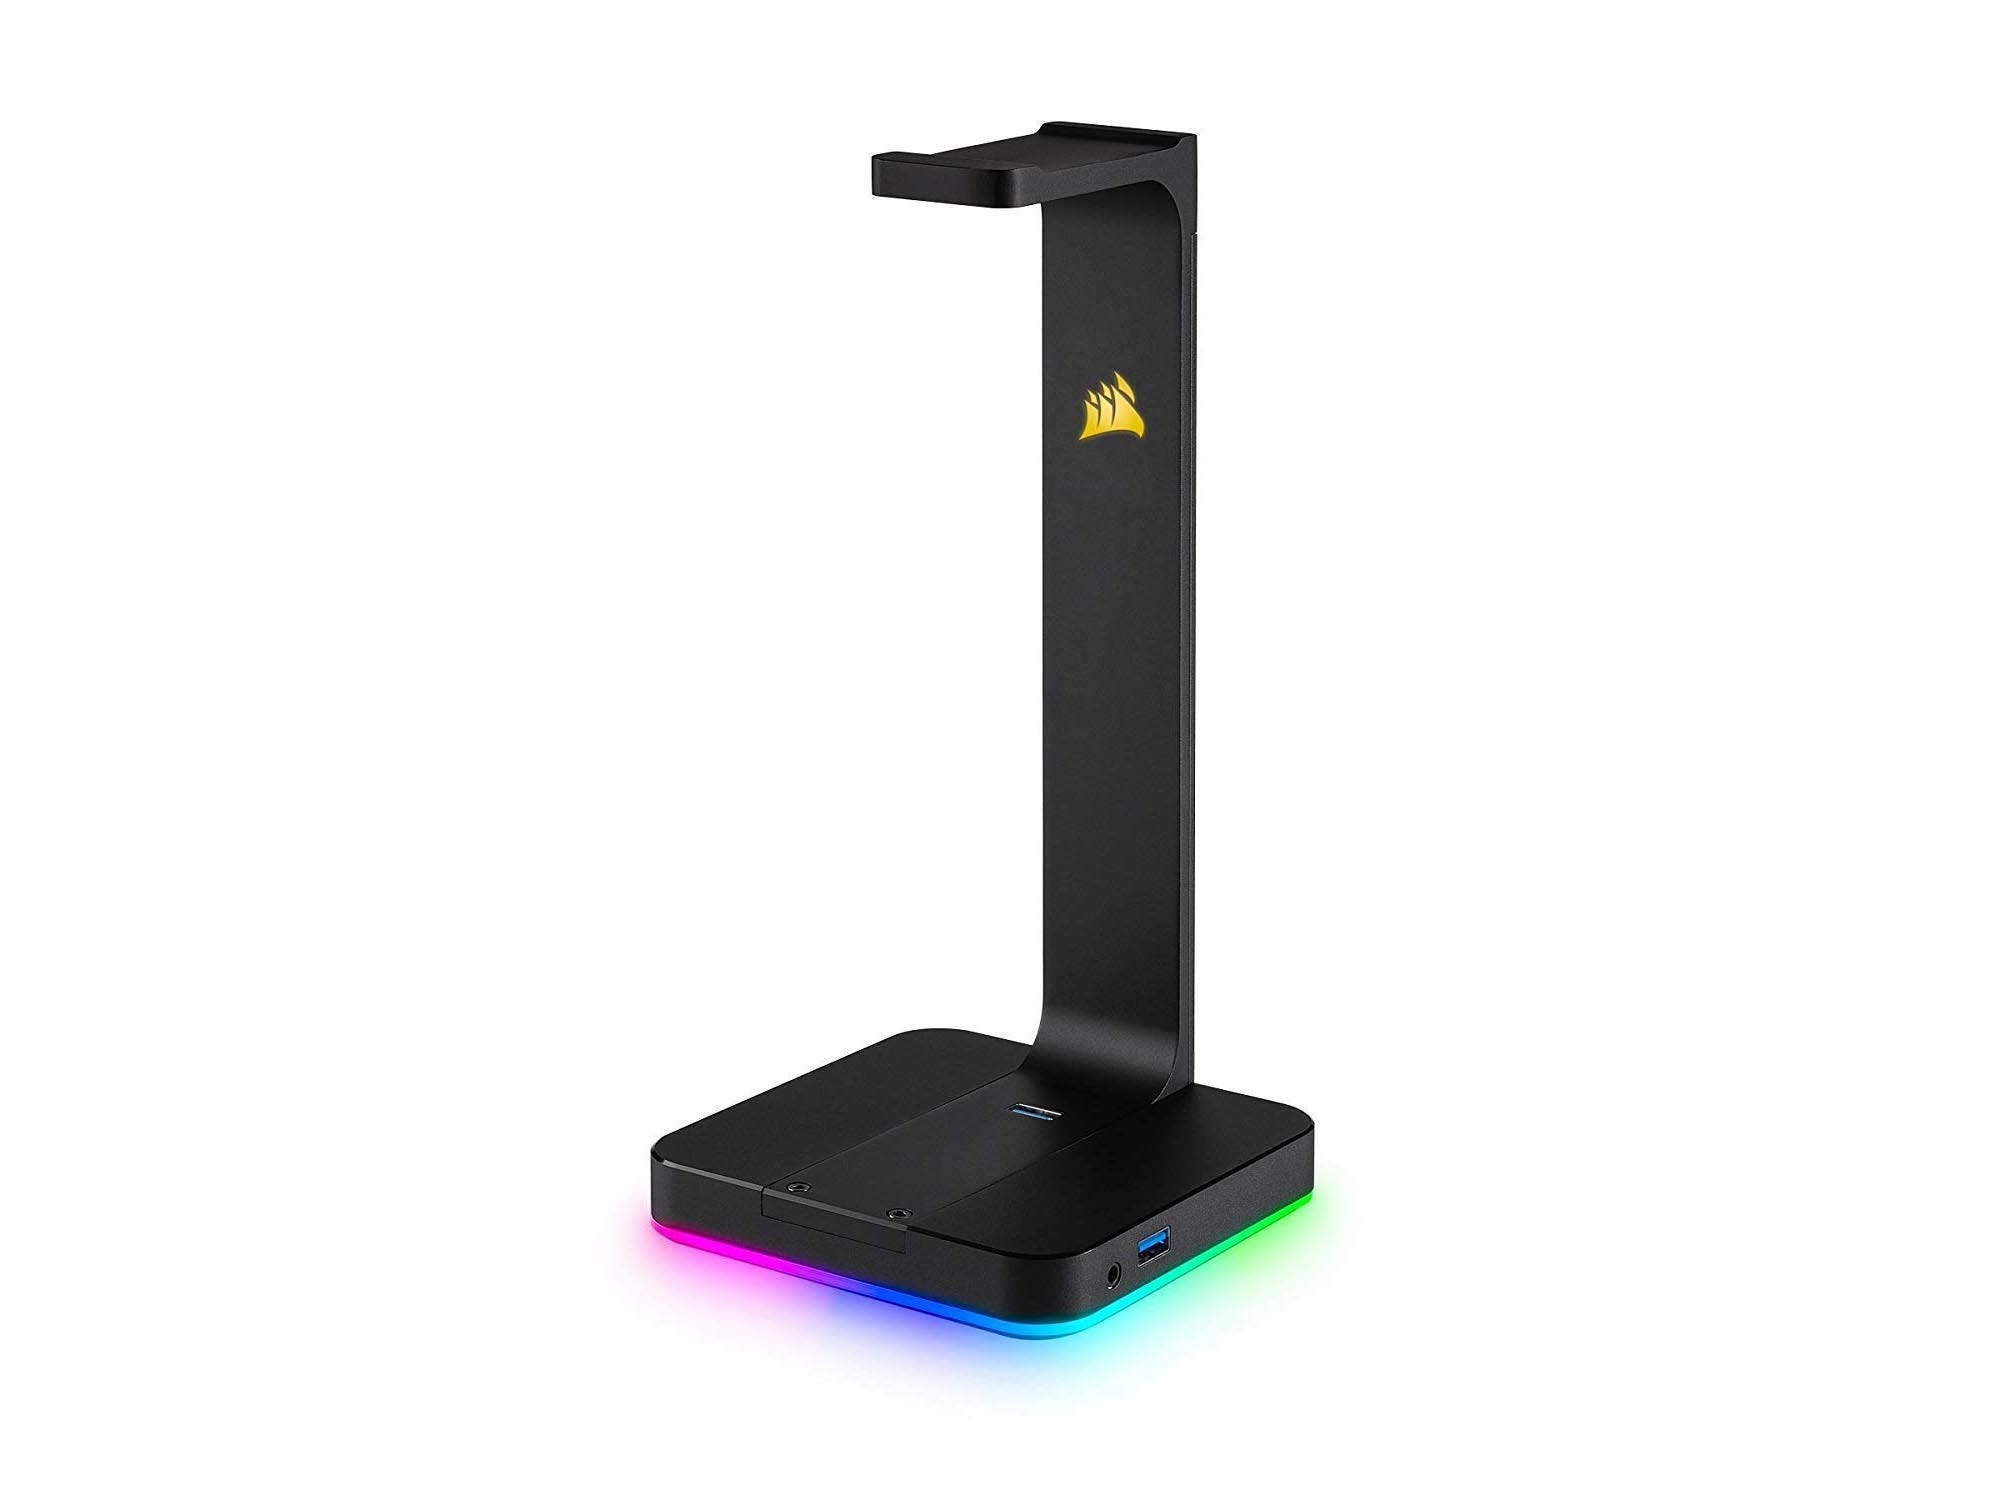 Corsair RGB headphone stand with audio and USB ports